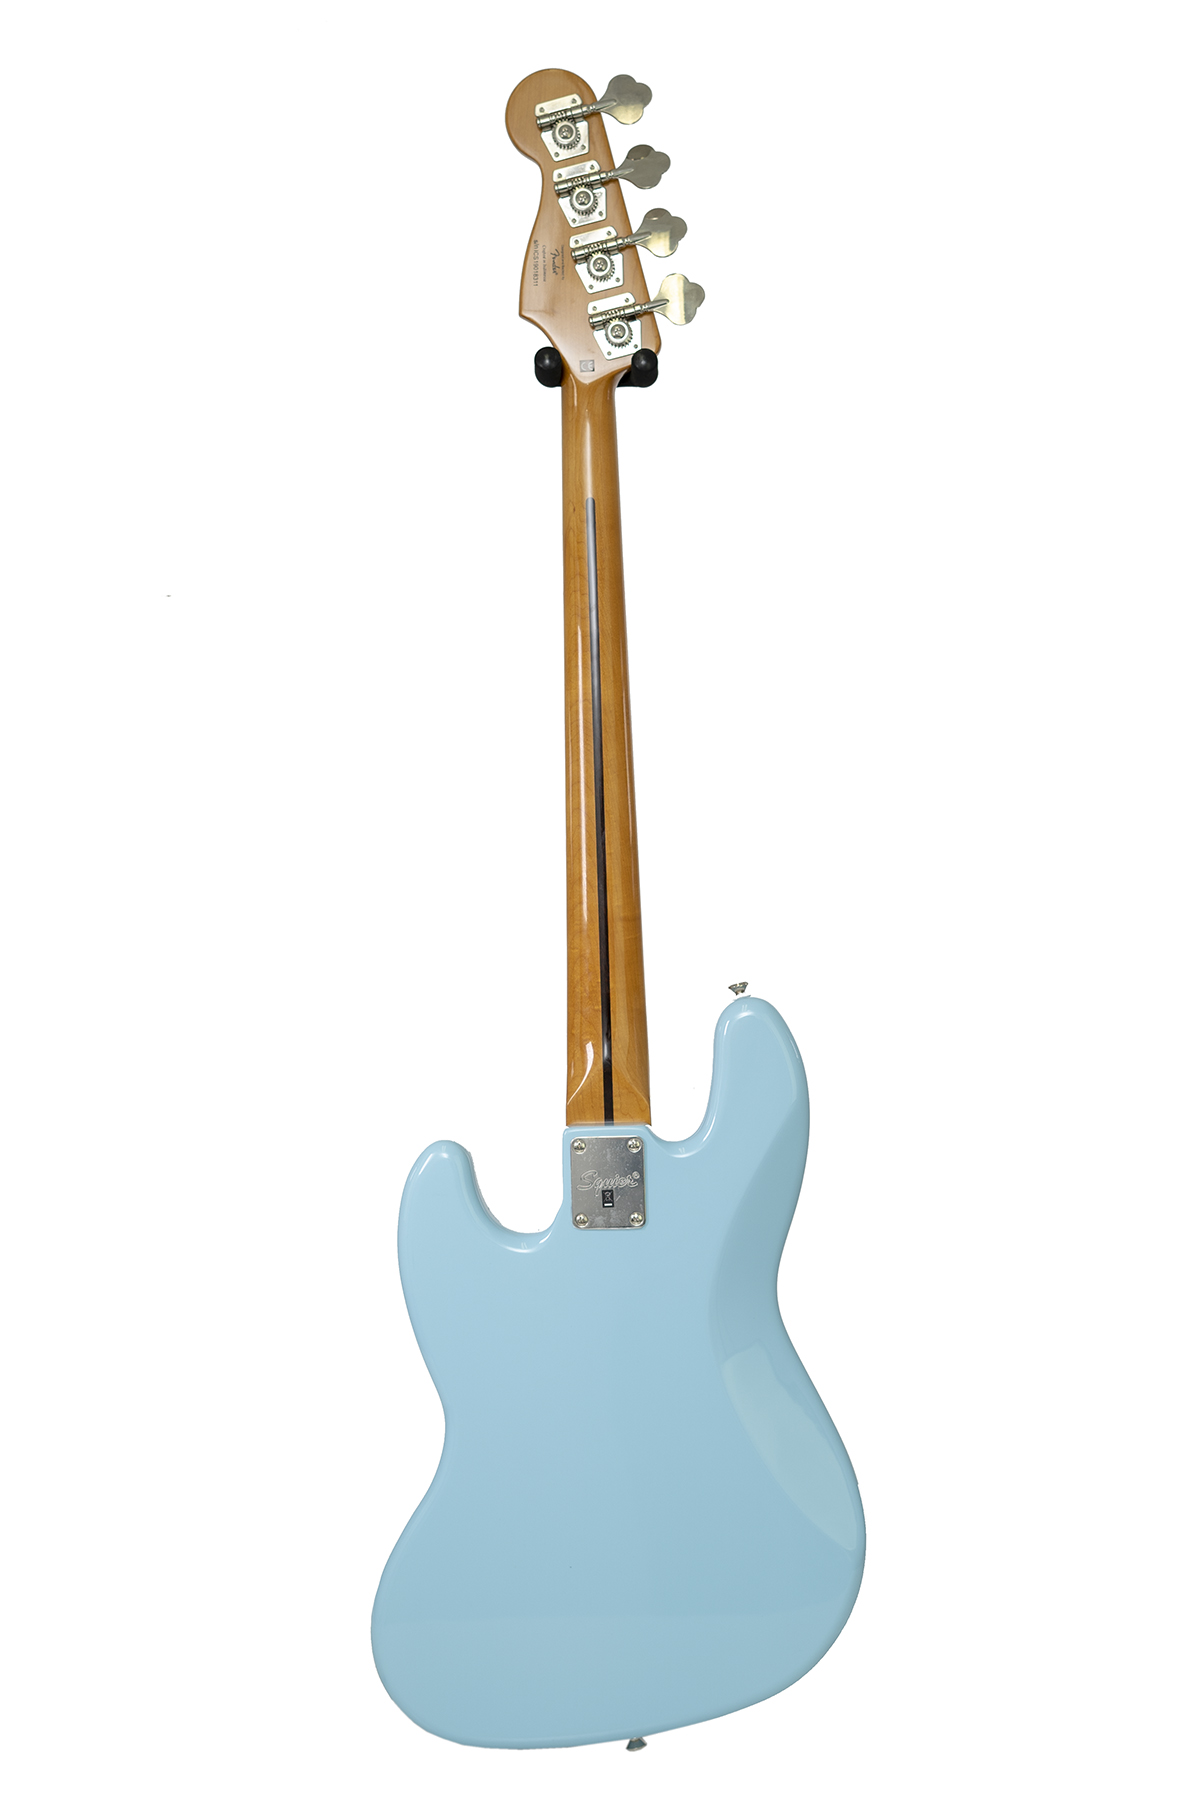 brand new fender squier classic vibe 60 39 s jazz bass daphne blue new york music emporium. Black Bedroom Furniture Sets. Home Design Ideas